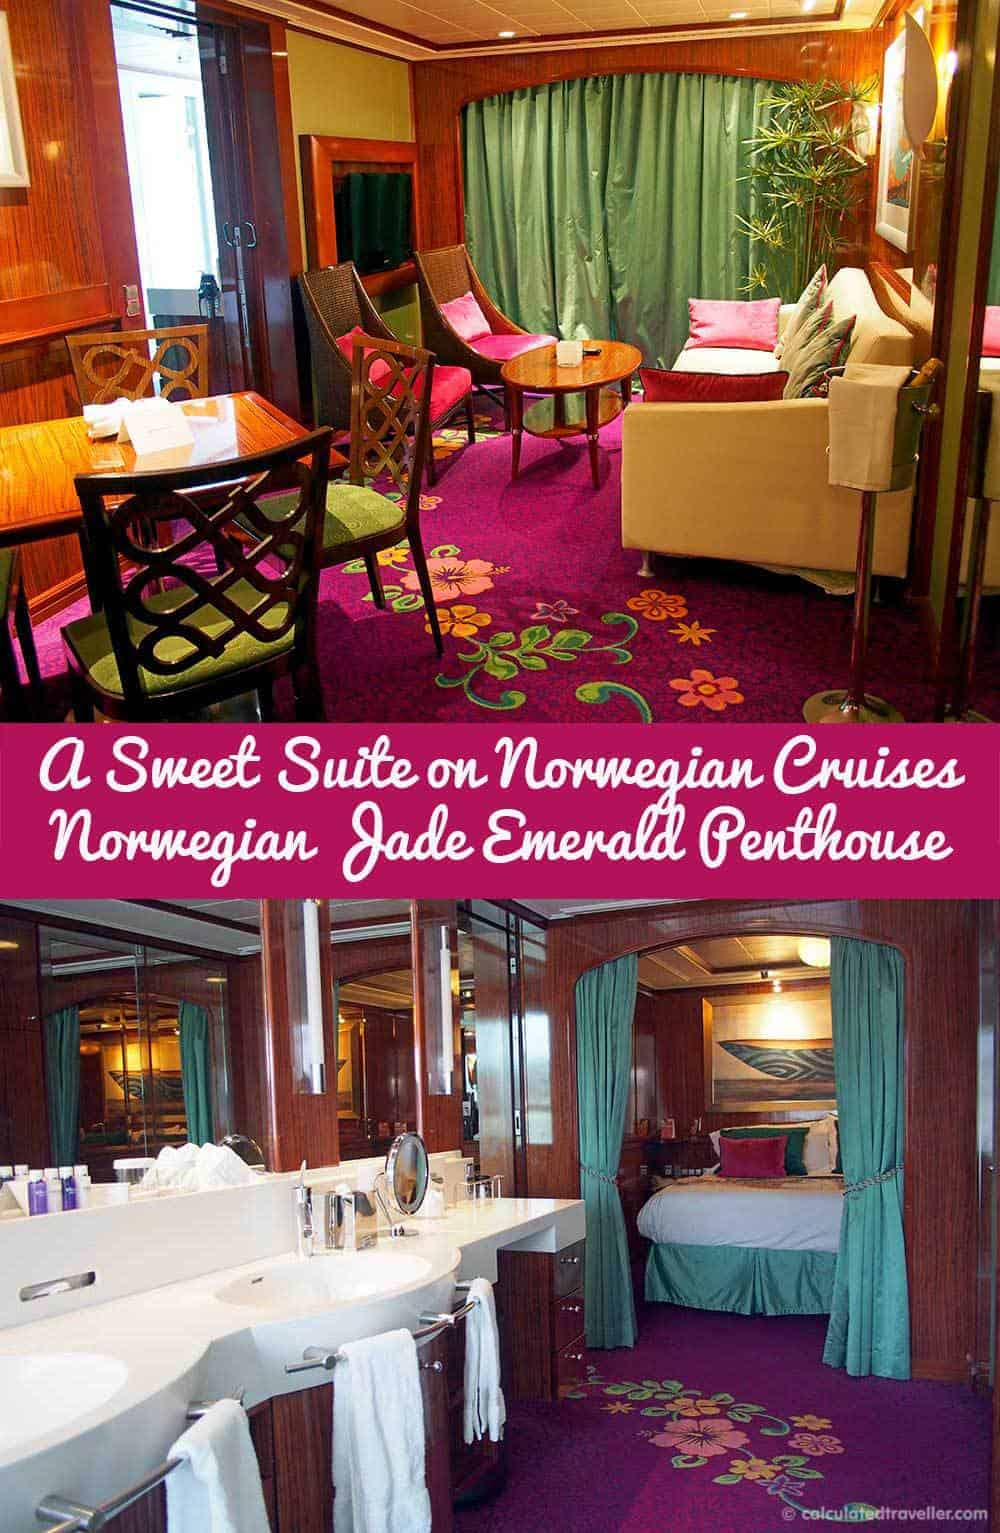 A Sweet Suite on Norwegian Cruises. A Norwegian Jade Emerald Penthouse Experience in a 2 bedroom / 2 bathroom balcony suite by Calculated Traveller.